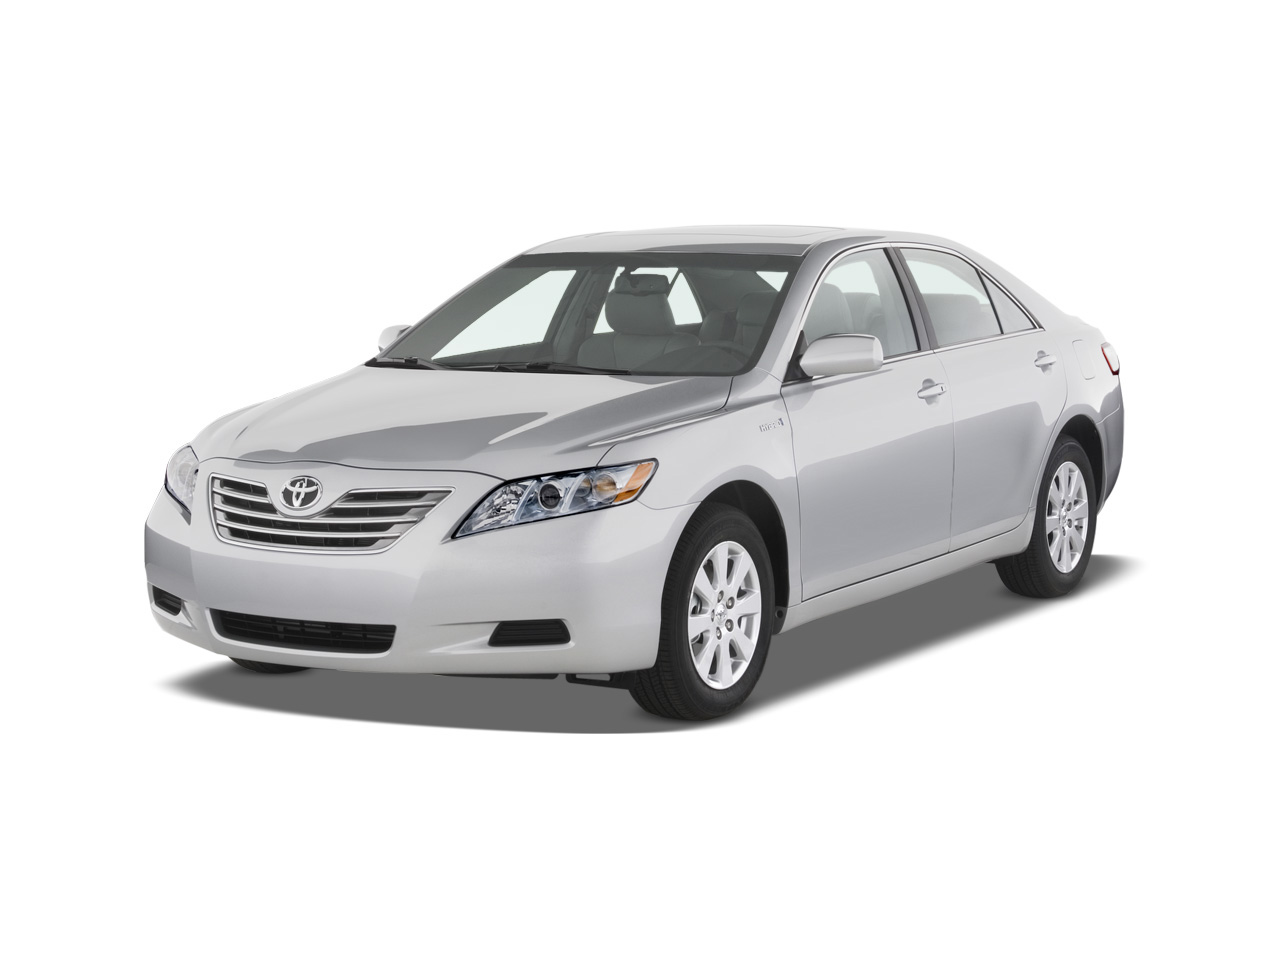 toyota camry hybrid 2009 review amazing pictures and images look at the car. Black Bedroom Furniture Sets. Home Design Ideas